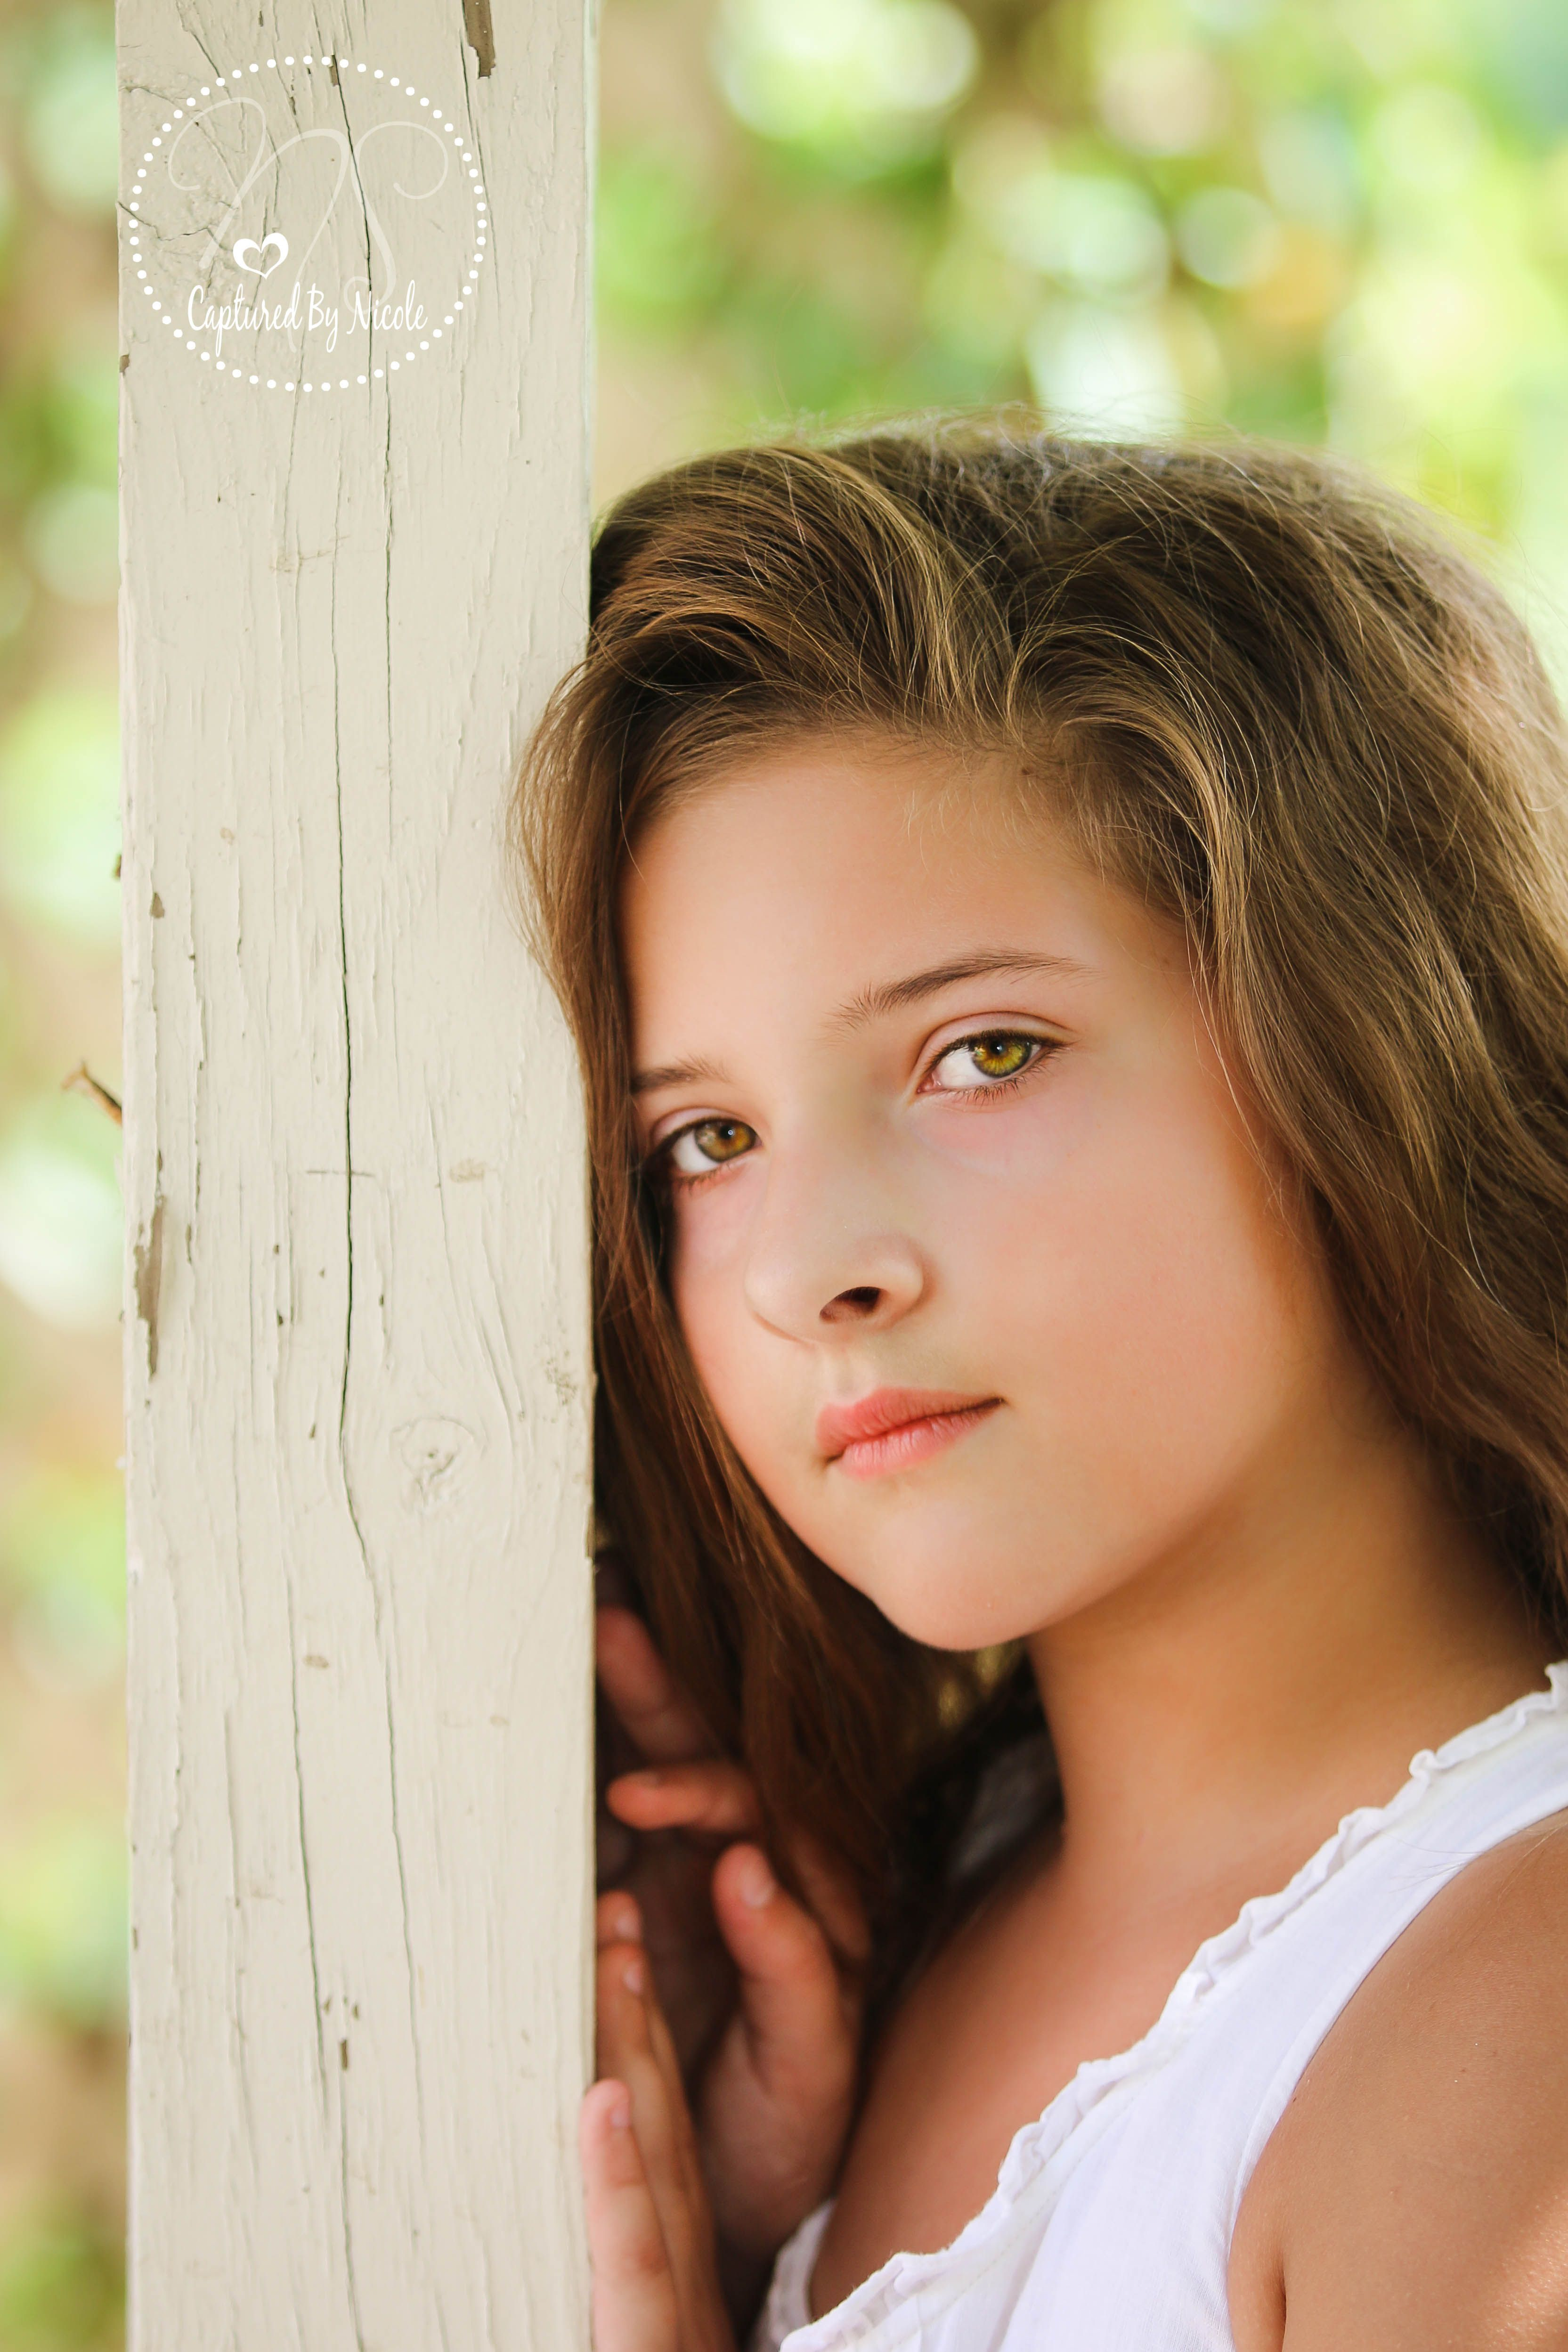 Pre Teen Model Gallery: Pre Teen Photos Love This Pose, Love Her Eyes Photo By